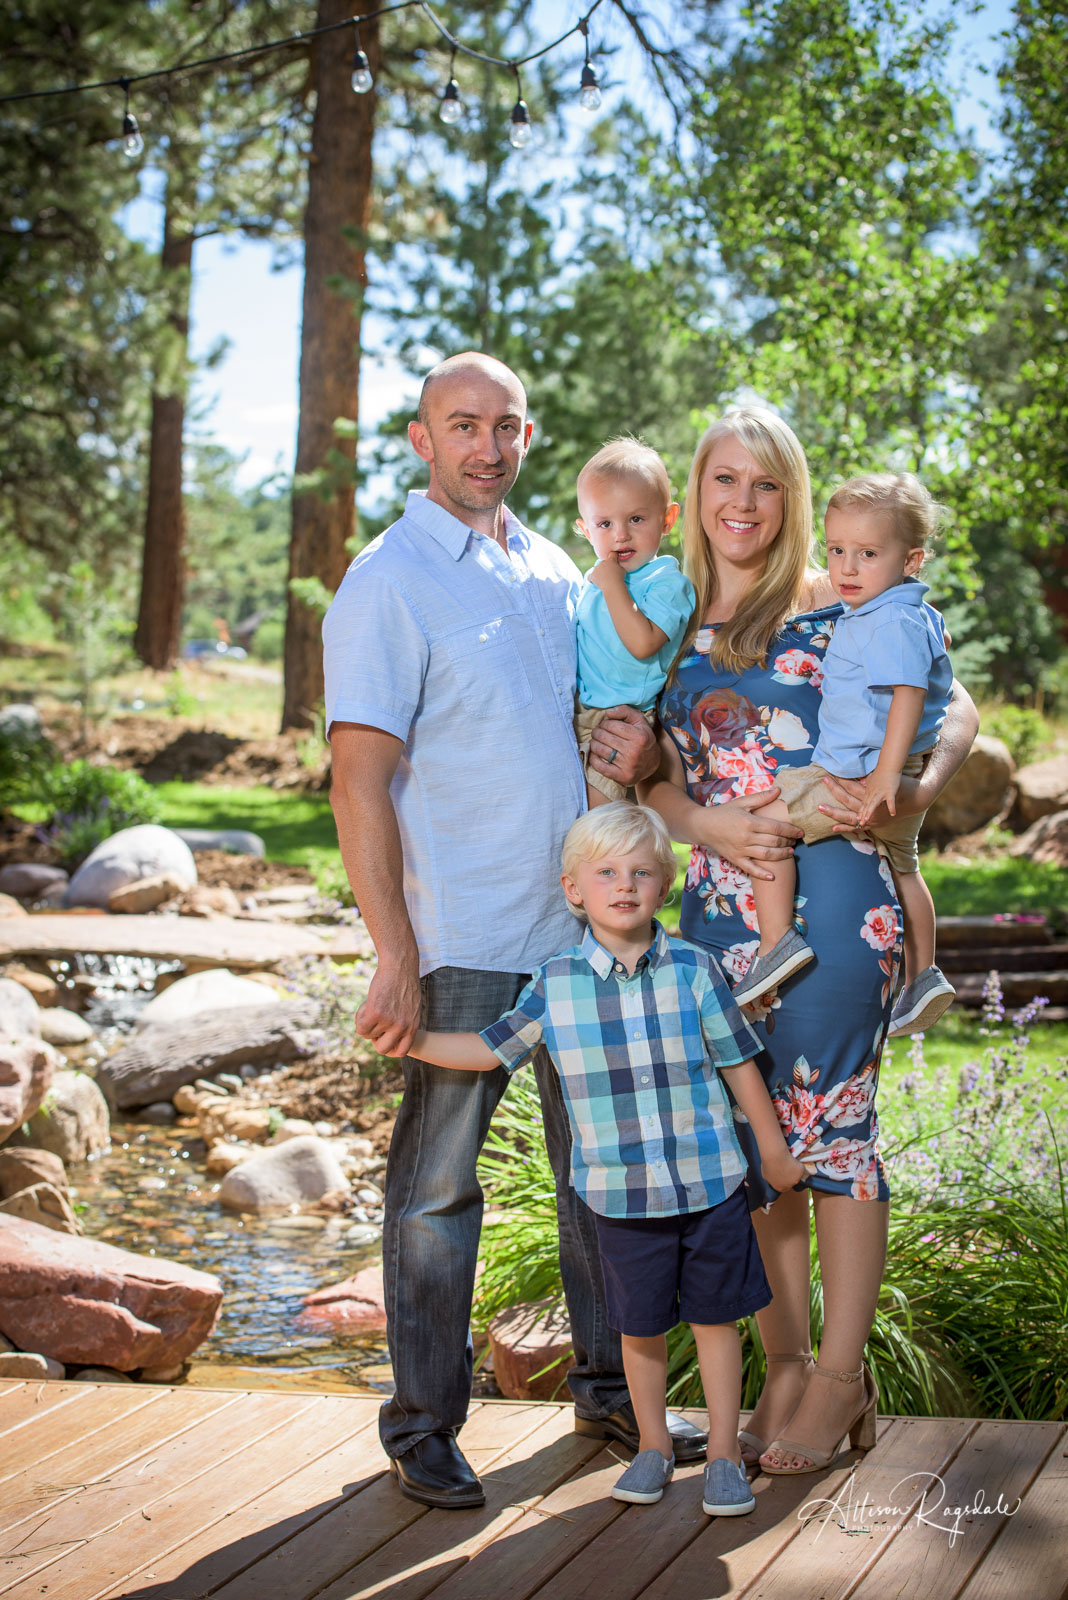 Durango Family portraits by Allison Ragsdale Photography in Durango Colorado